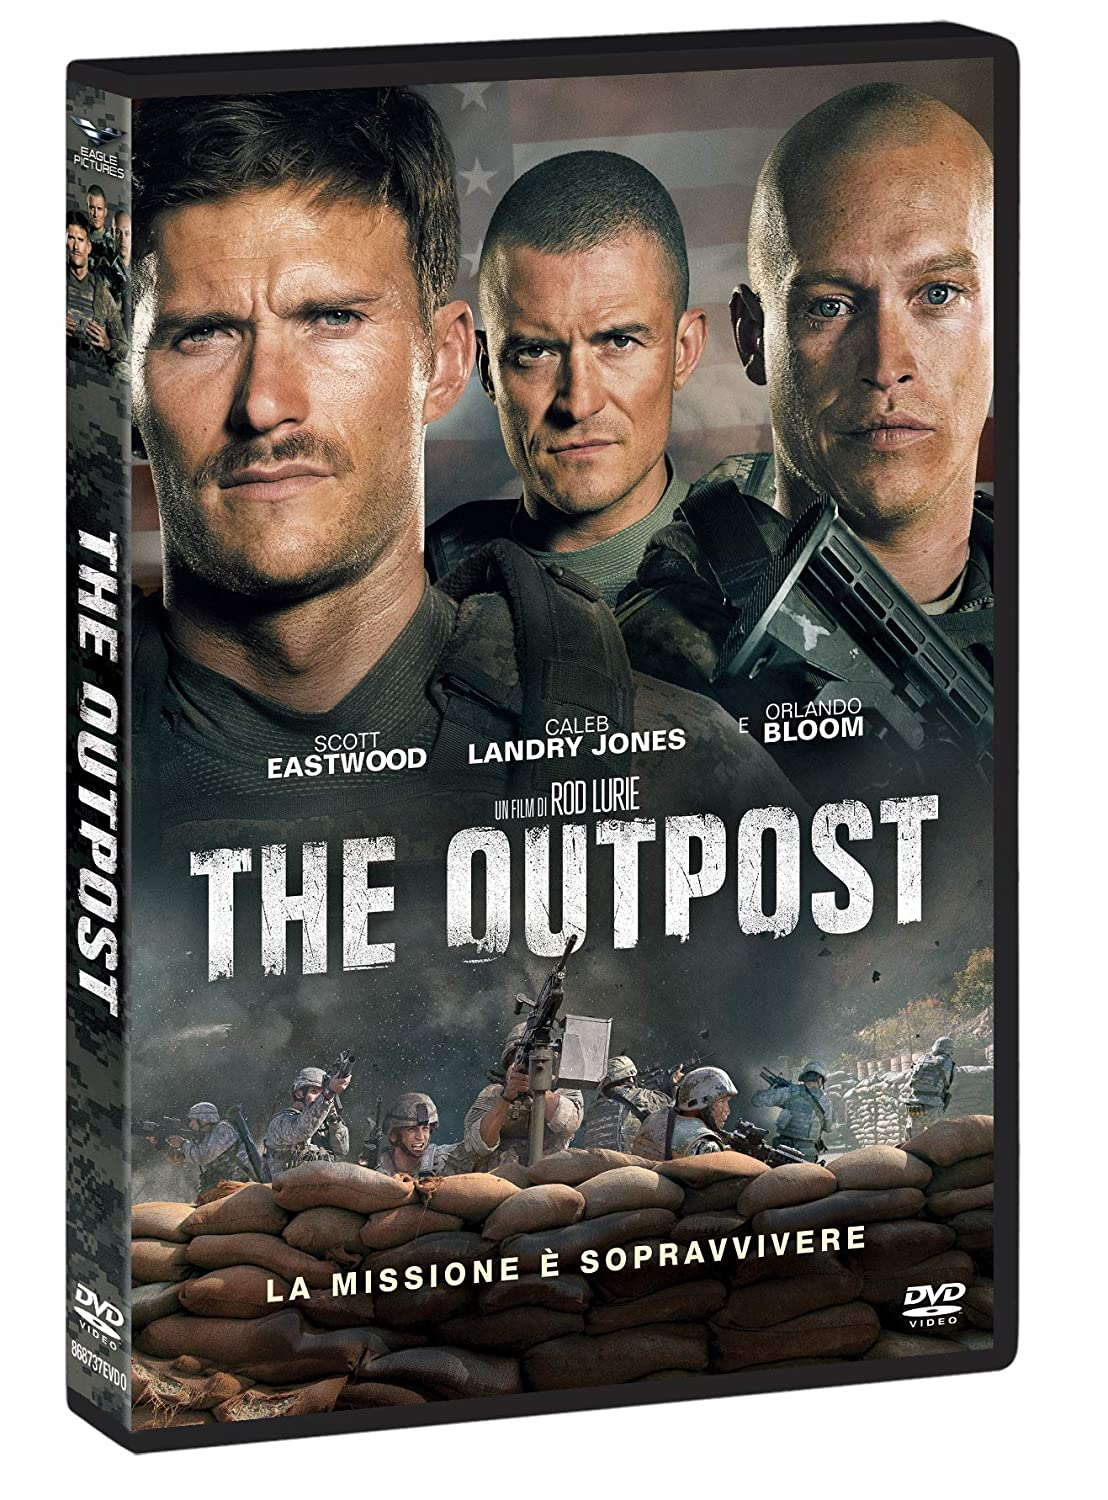 THE OUTPOST (DVD)